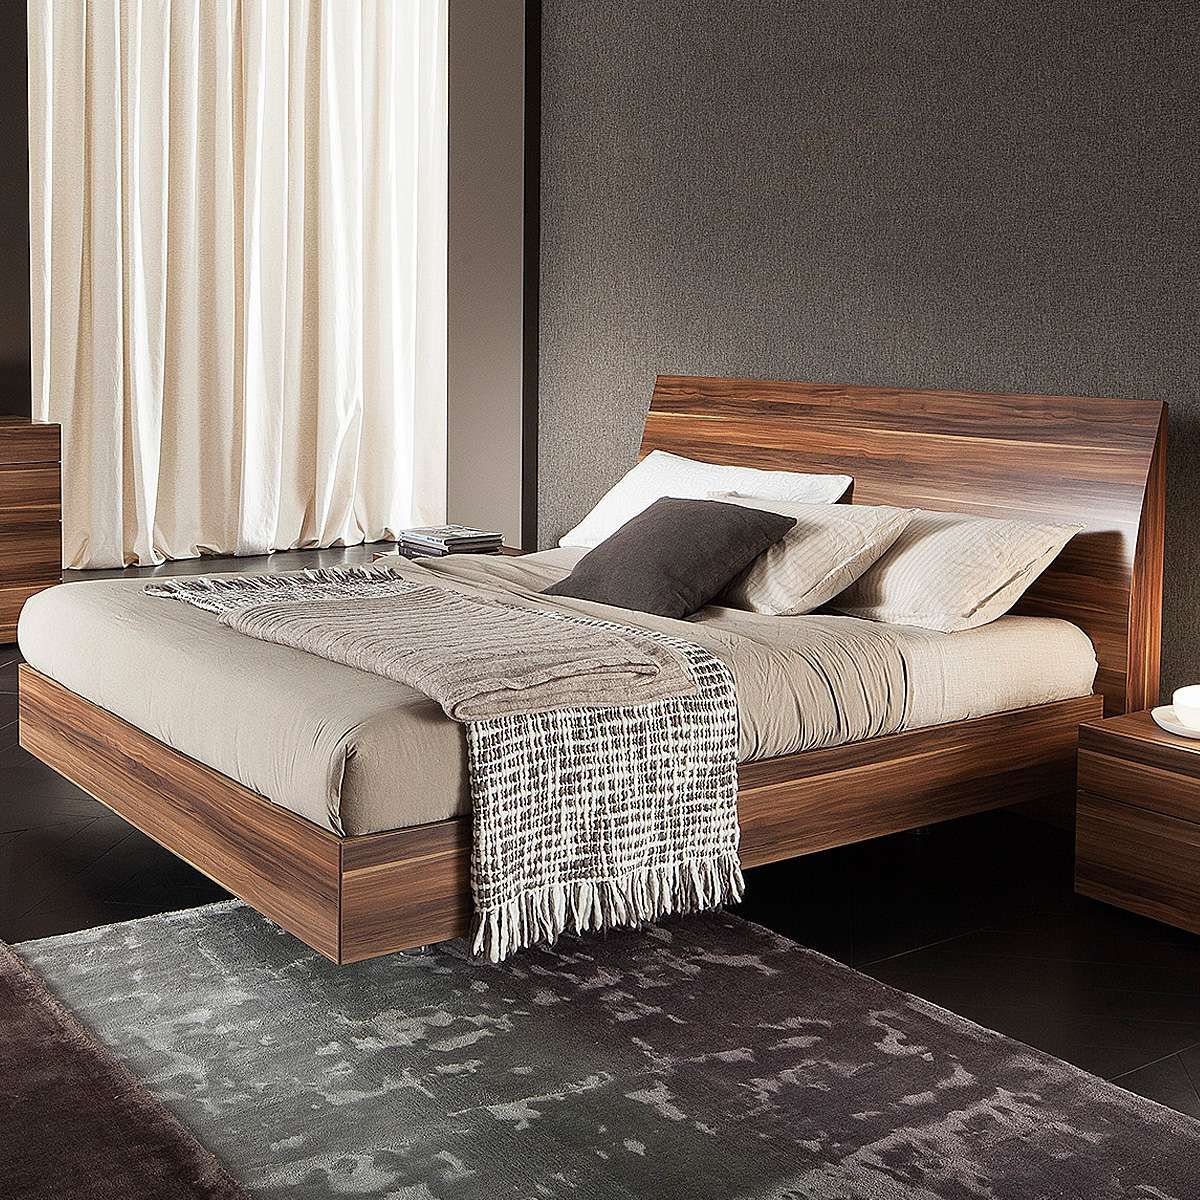 rossetto usa vela bed in walnut by rossetto  beds by rossetto  - rossetto usa vela bed in walnut by rossetto